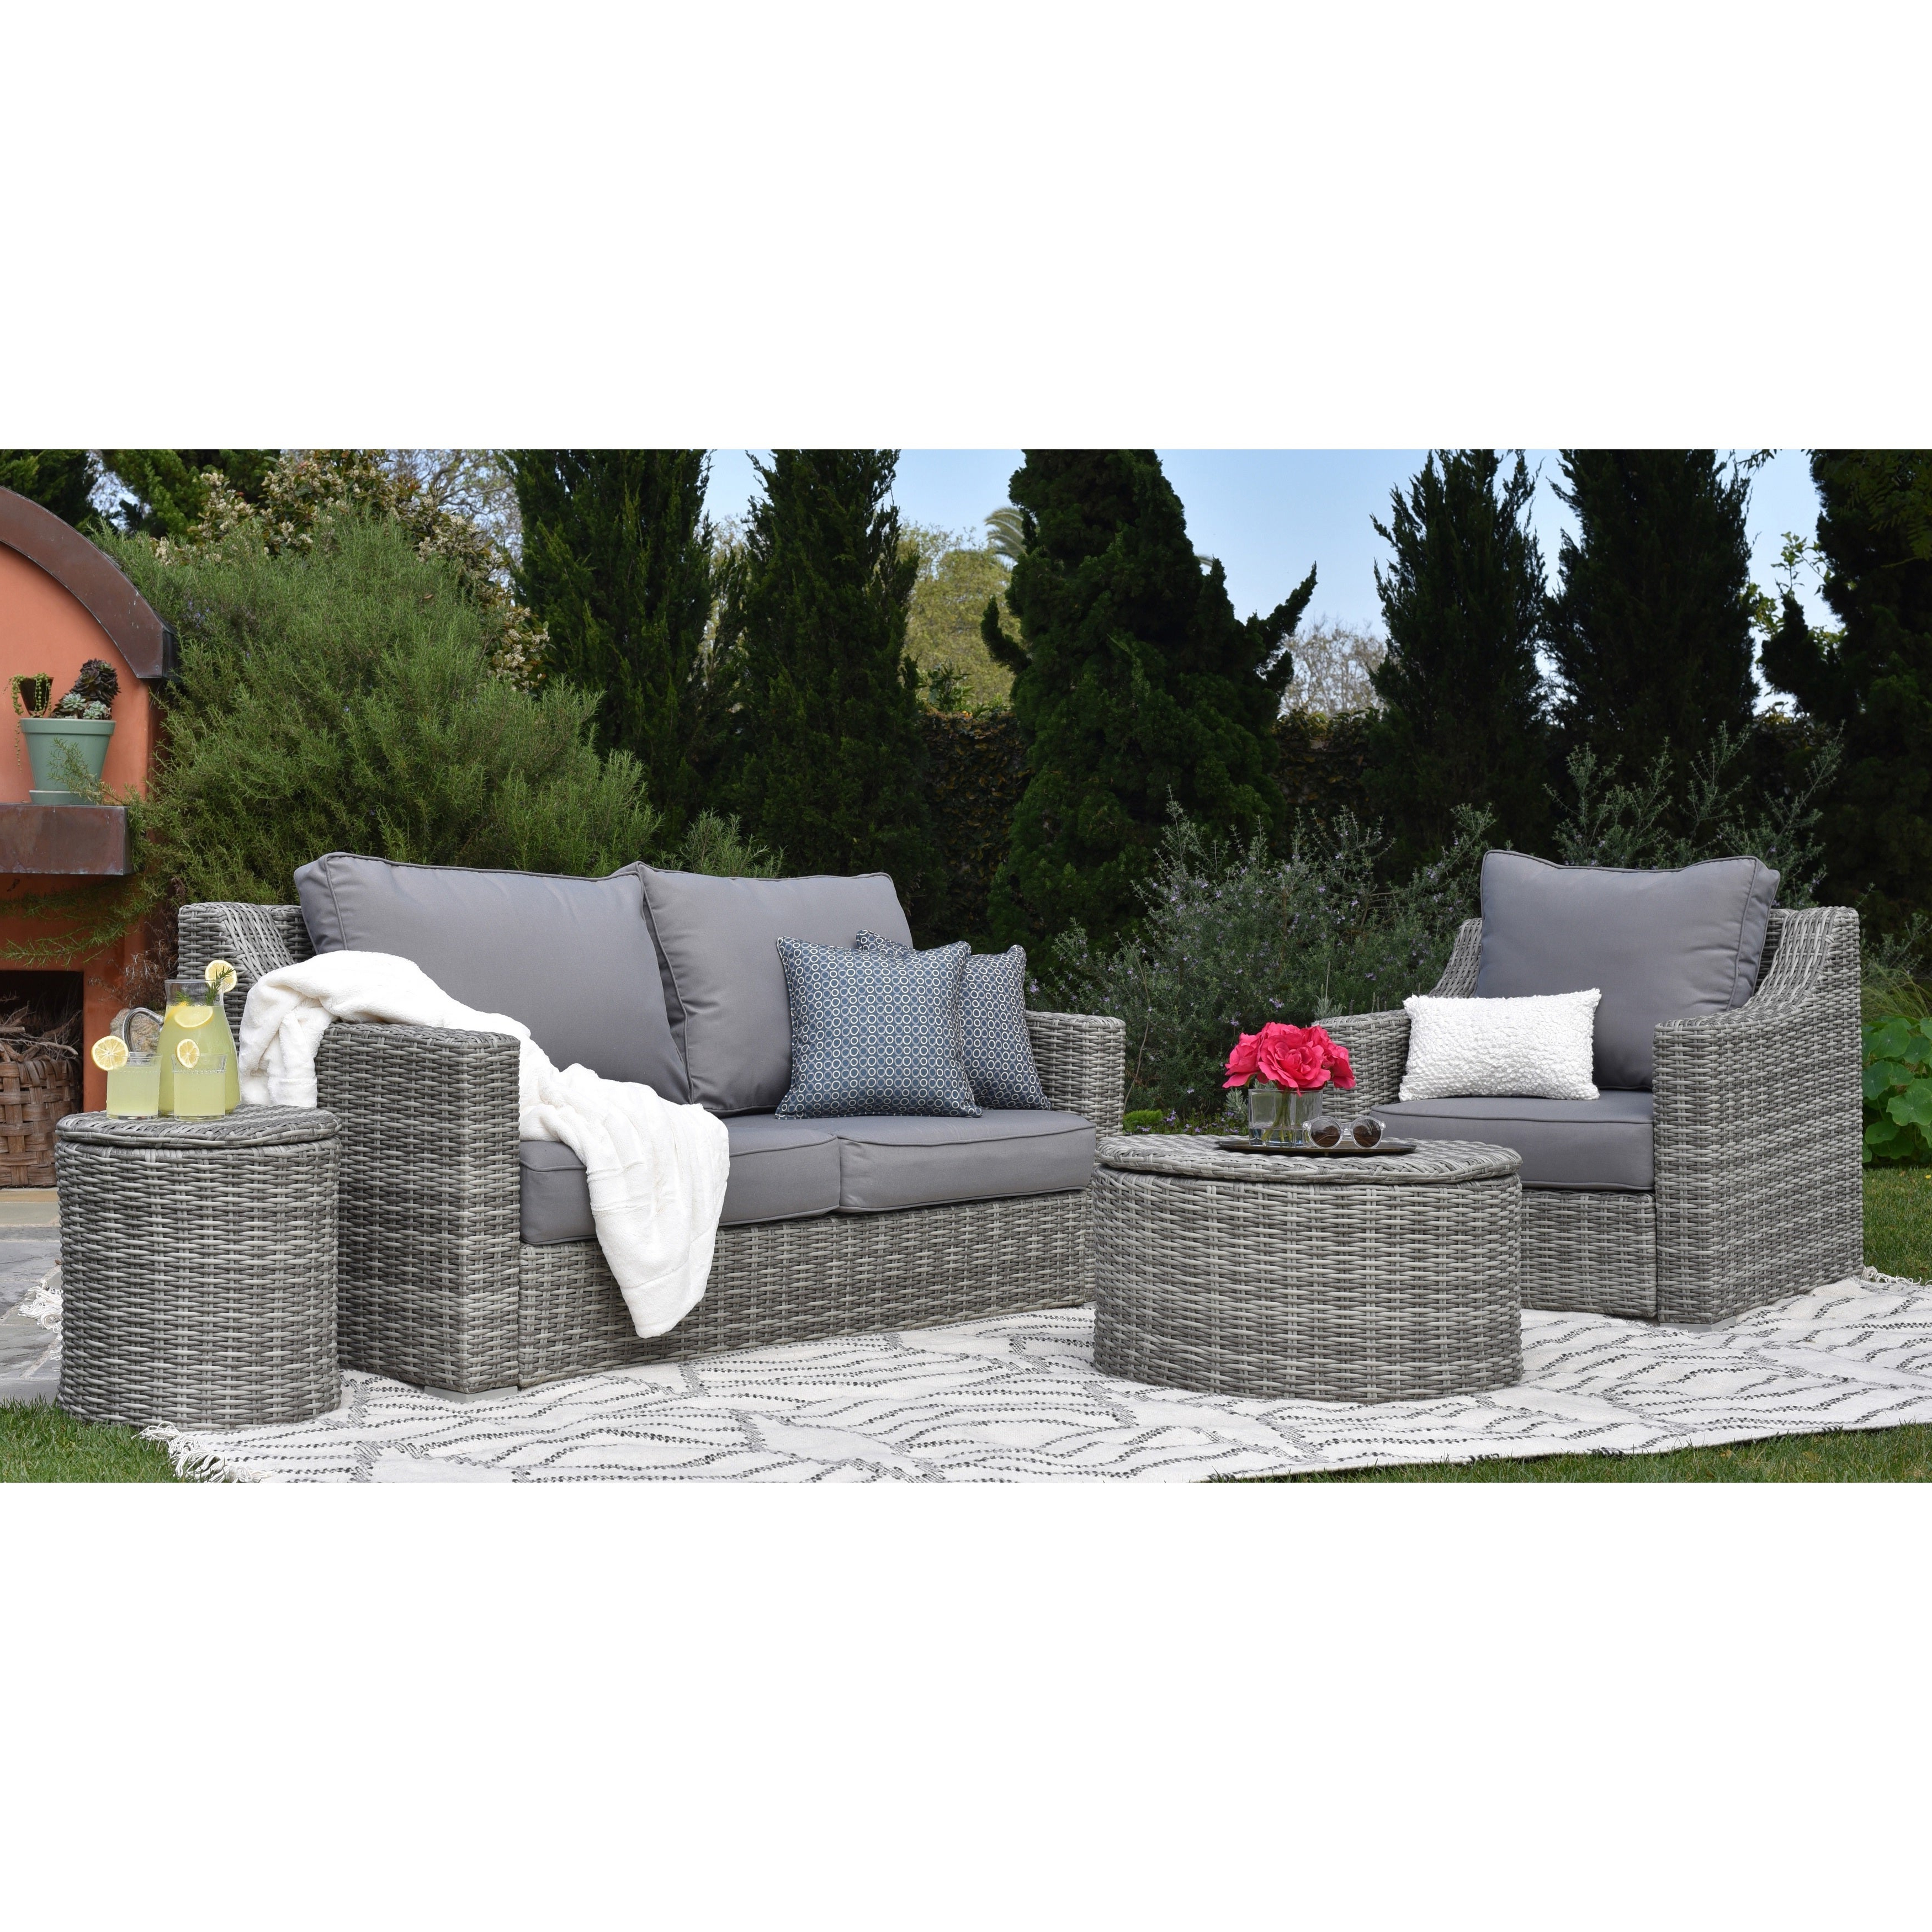 Vallauris Sofa With Cushions Intended For Well Liked Elle Decor Vallauris Outdoor Arm Chair (Gallery 4 of 20)